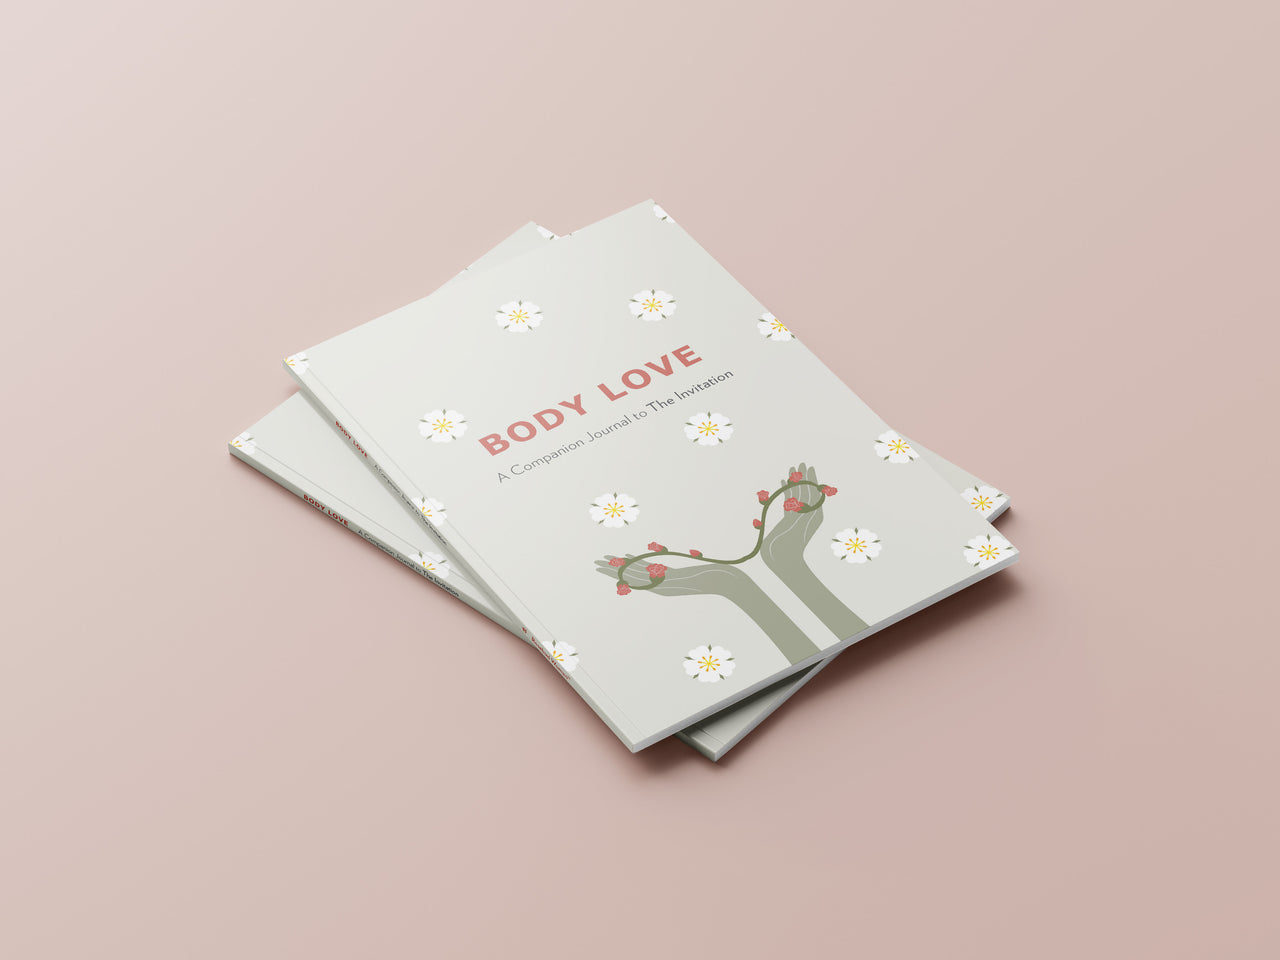 Body Love: A Companion Journal to the Invitation